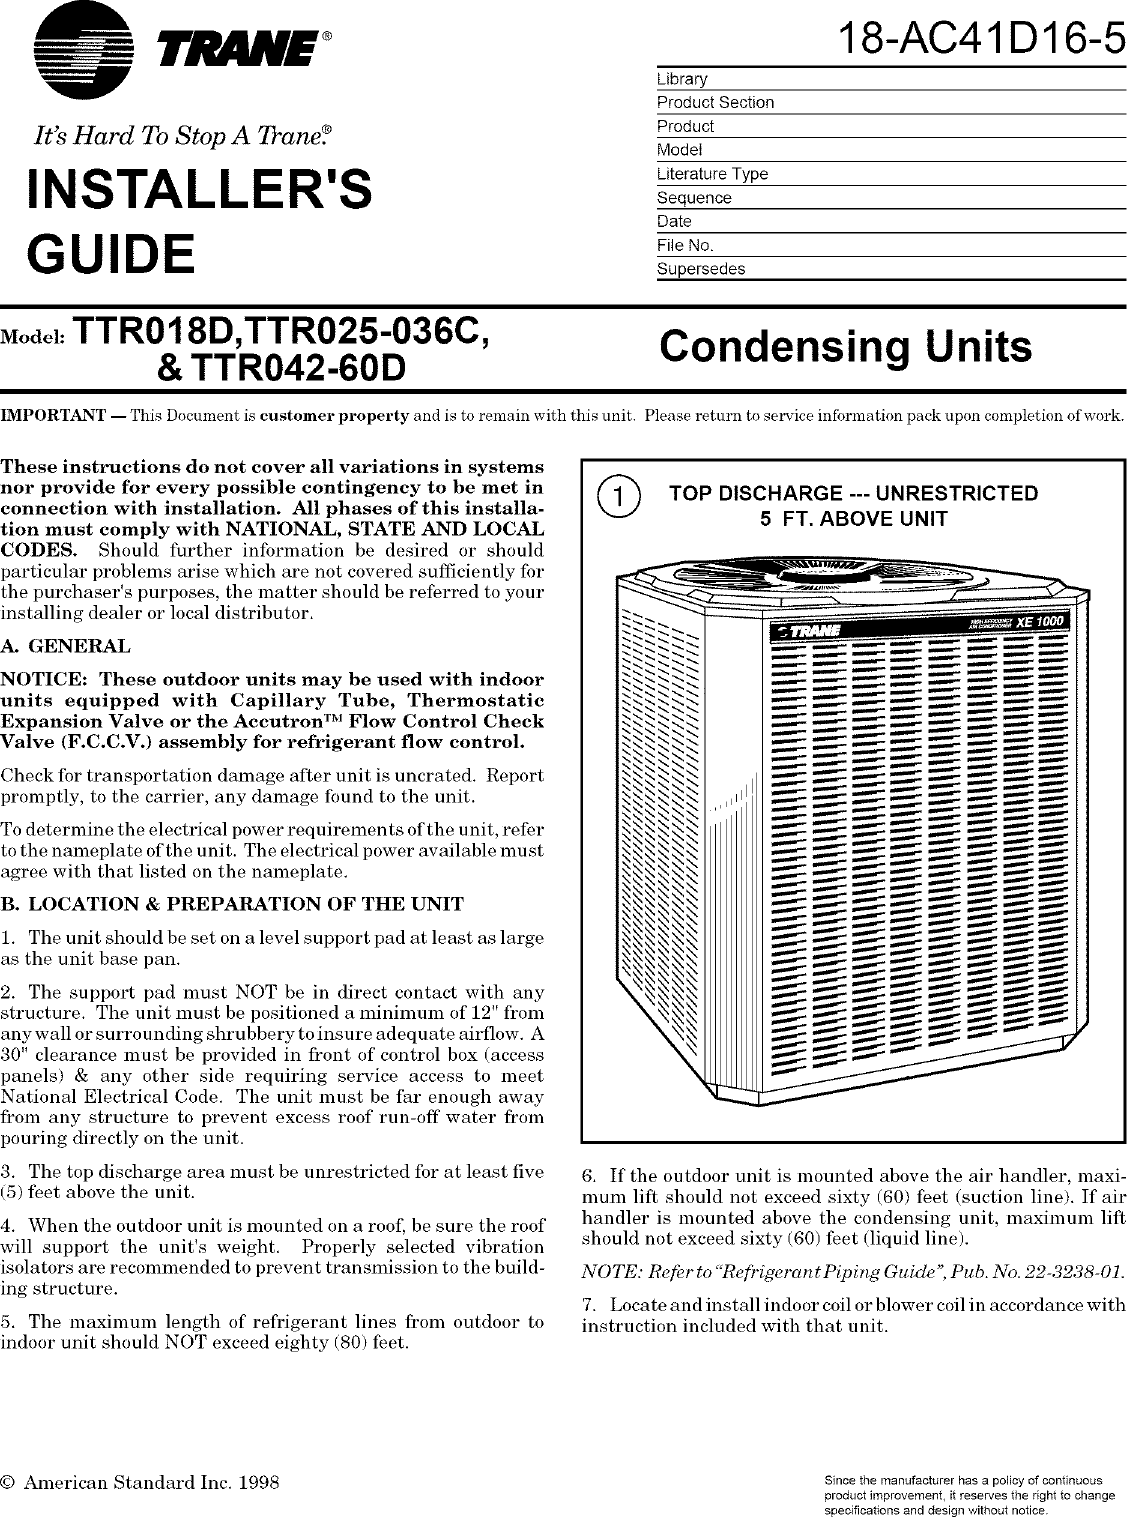 trane air conditioner installation manual